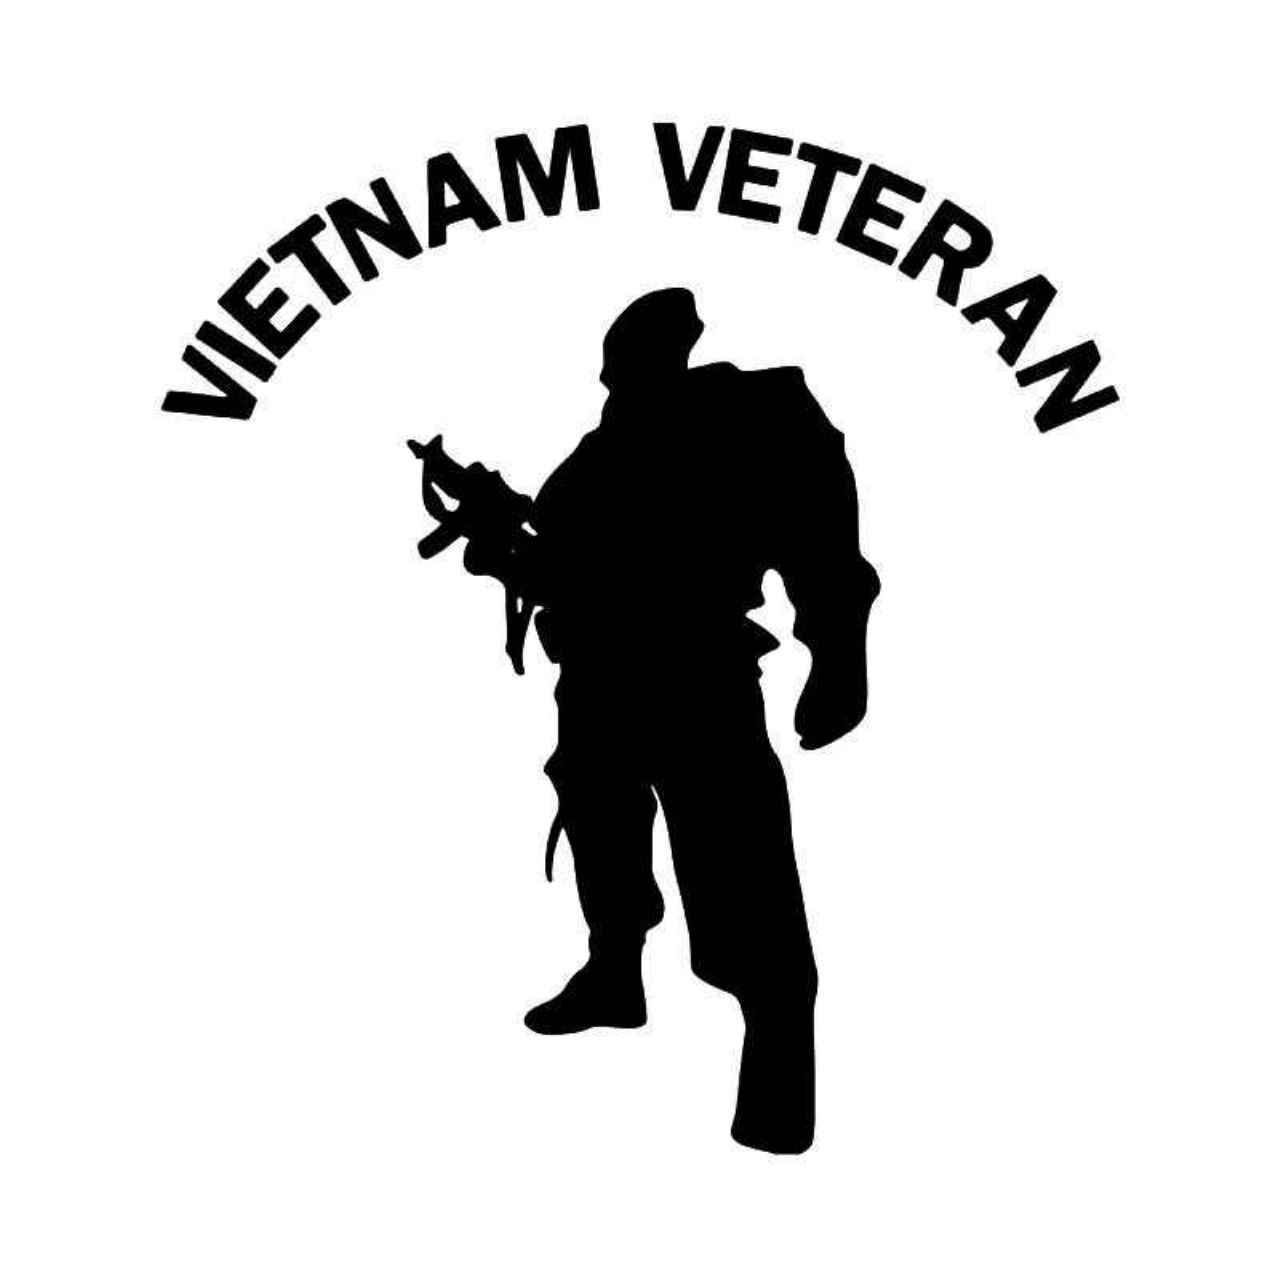 Vietnam Veteran Solr Military Vinyl Decal Sticker